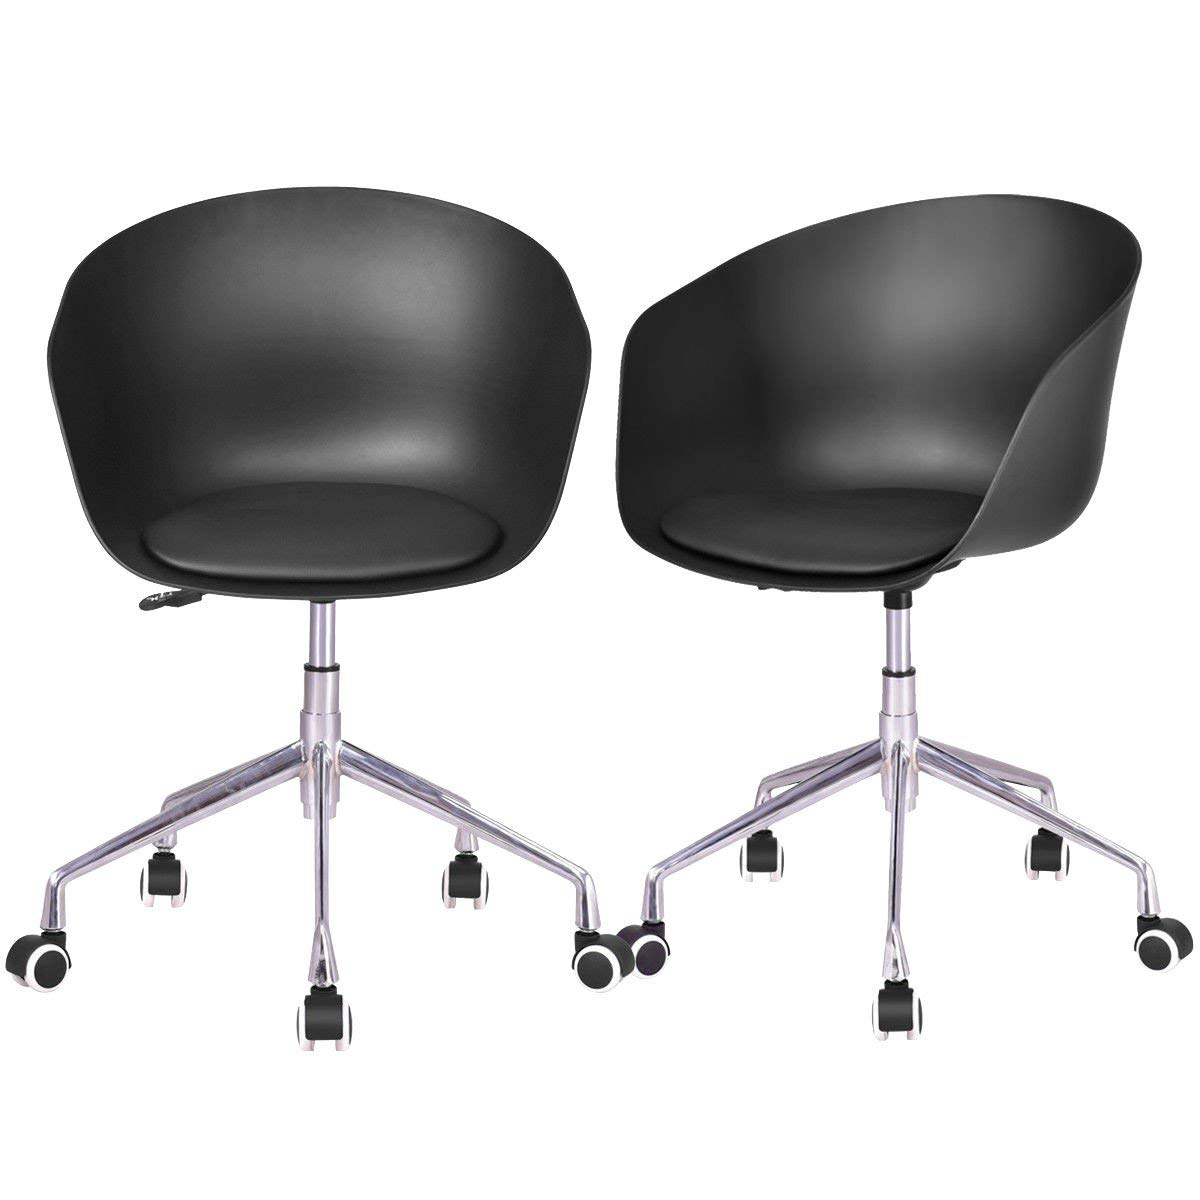 9ddaa2697338 Get Quotations · CHOOSEa ndBUY Set of 2 PP Swivel Height Adjustable Rolling  Desk Chairs Chair Desk Rolling Office